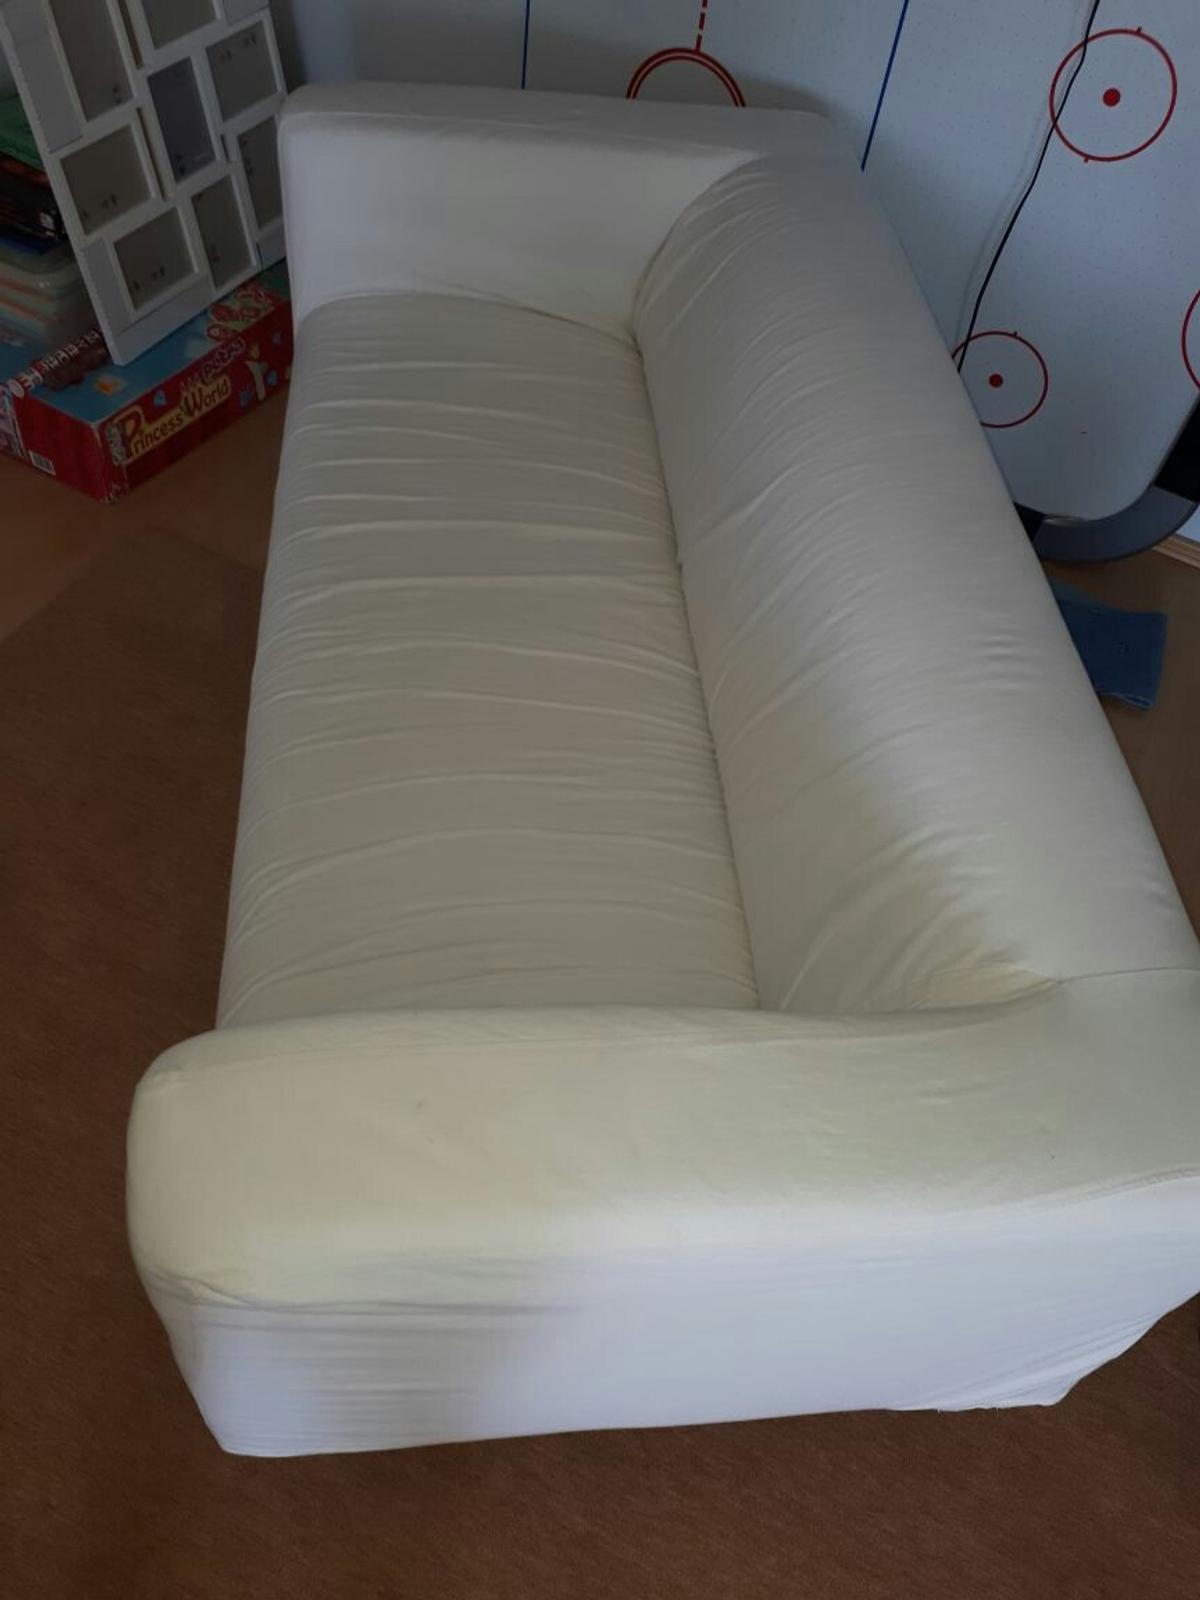 Sofa 2er Couch Ikea Klippan Inklusive Bezug In 93073 Neutraubling For 40 00 For Sale Shpock